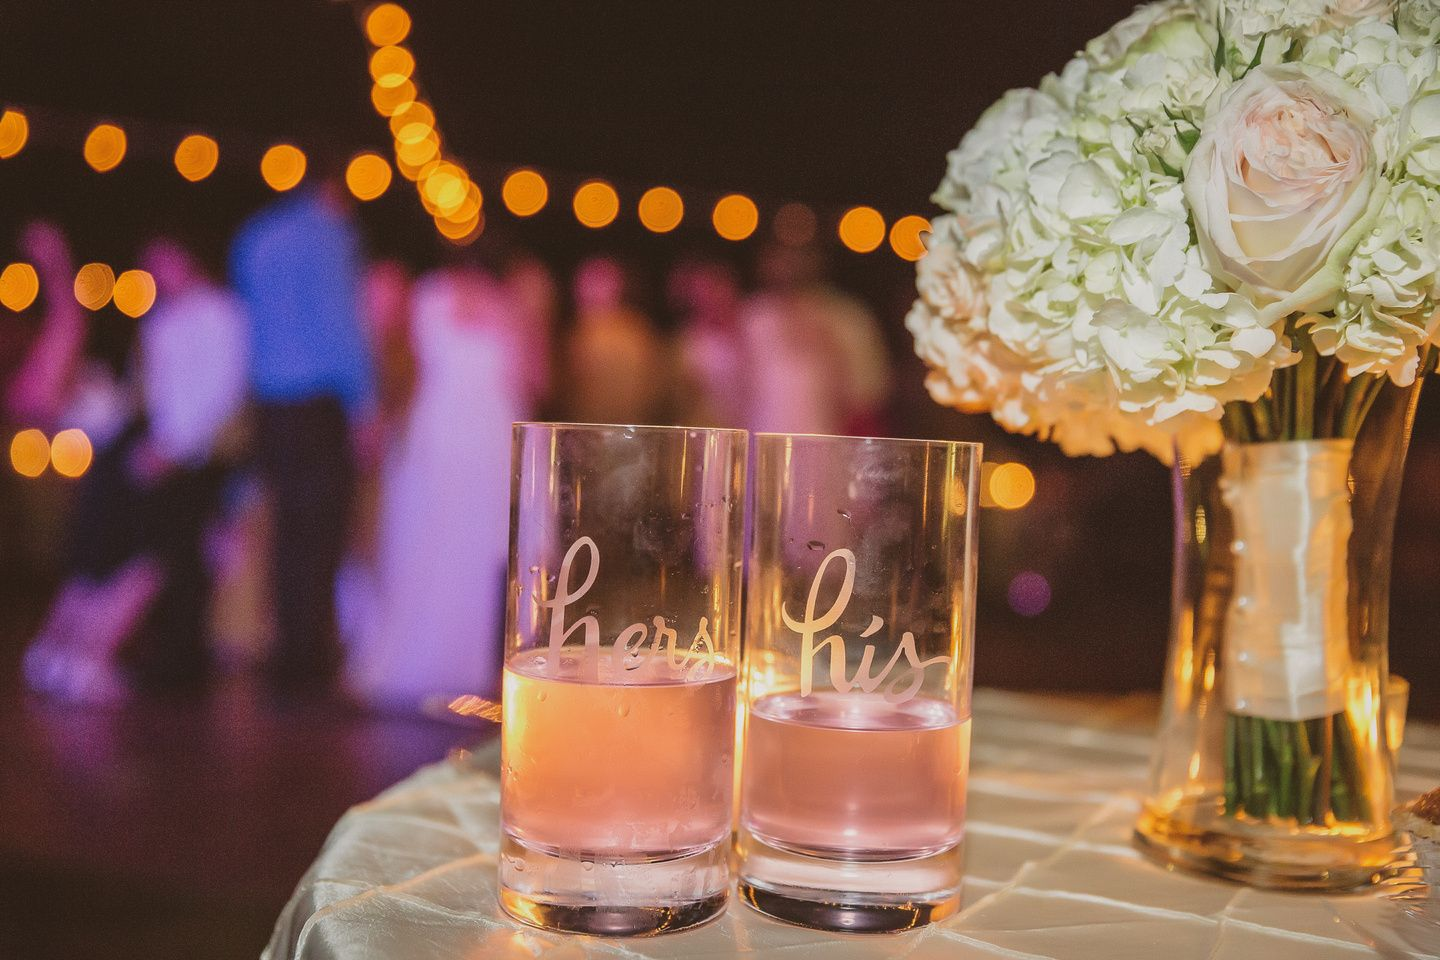 Rob Mould Photography, Nashville Wedding Photography, always captures the pretty details from weddings so well! Can't wait to see him at the next Nashville PWG Wedding Show on June 1st!